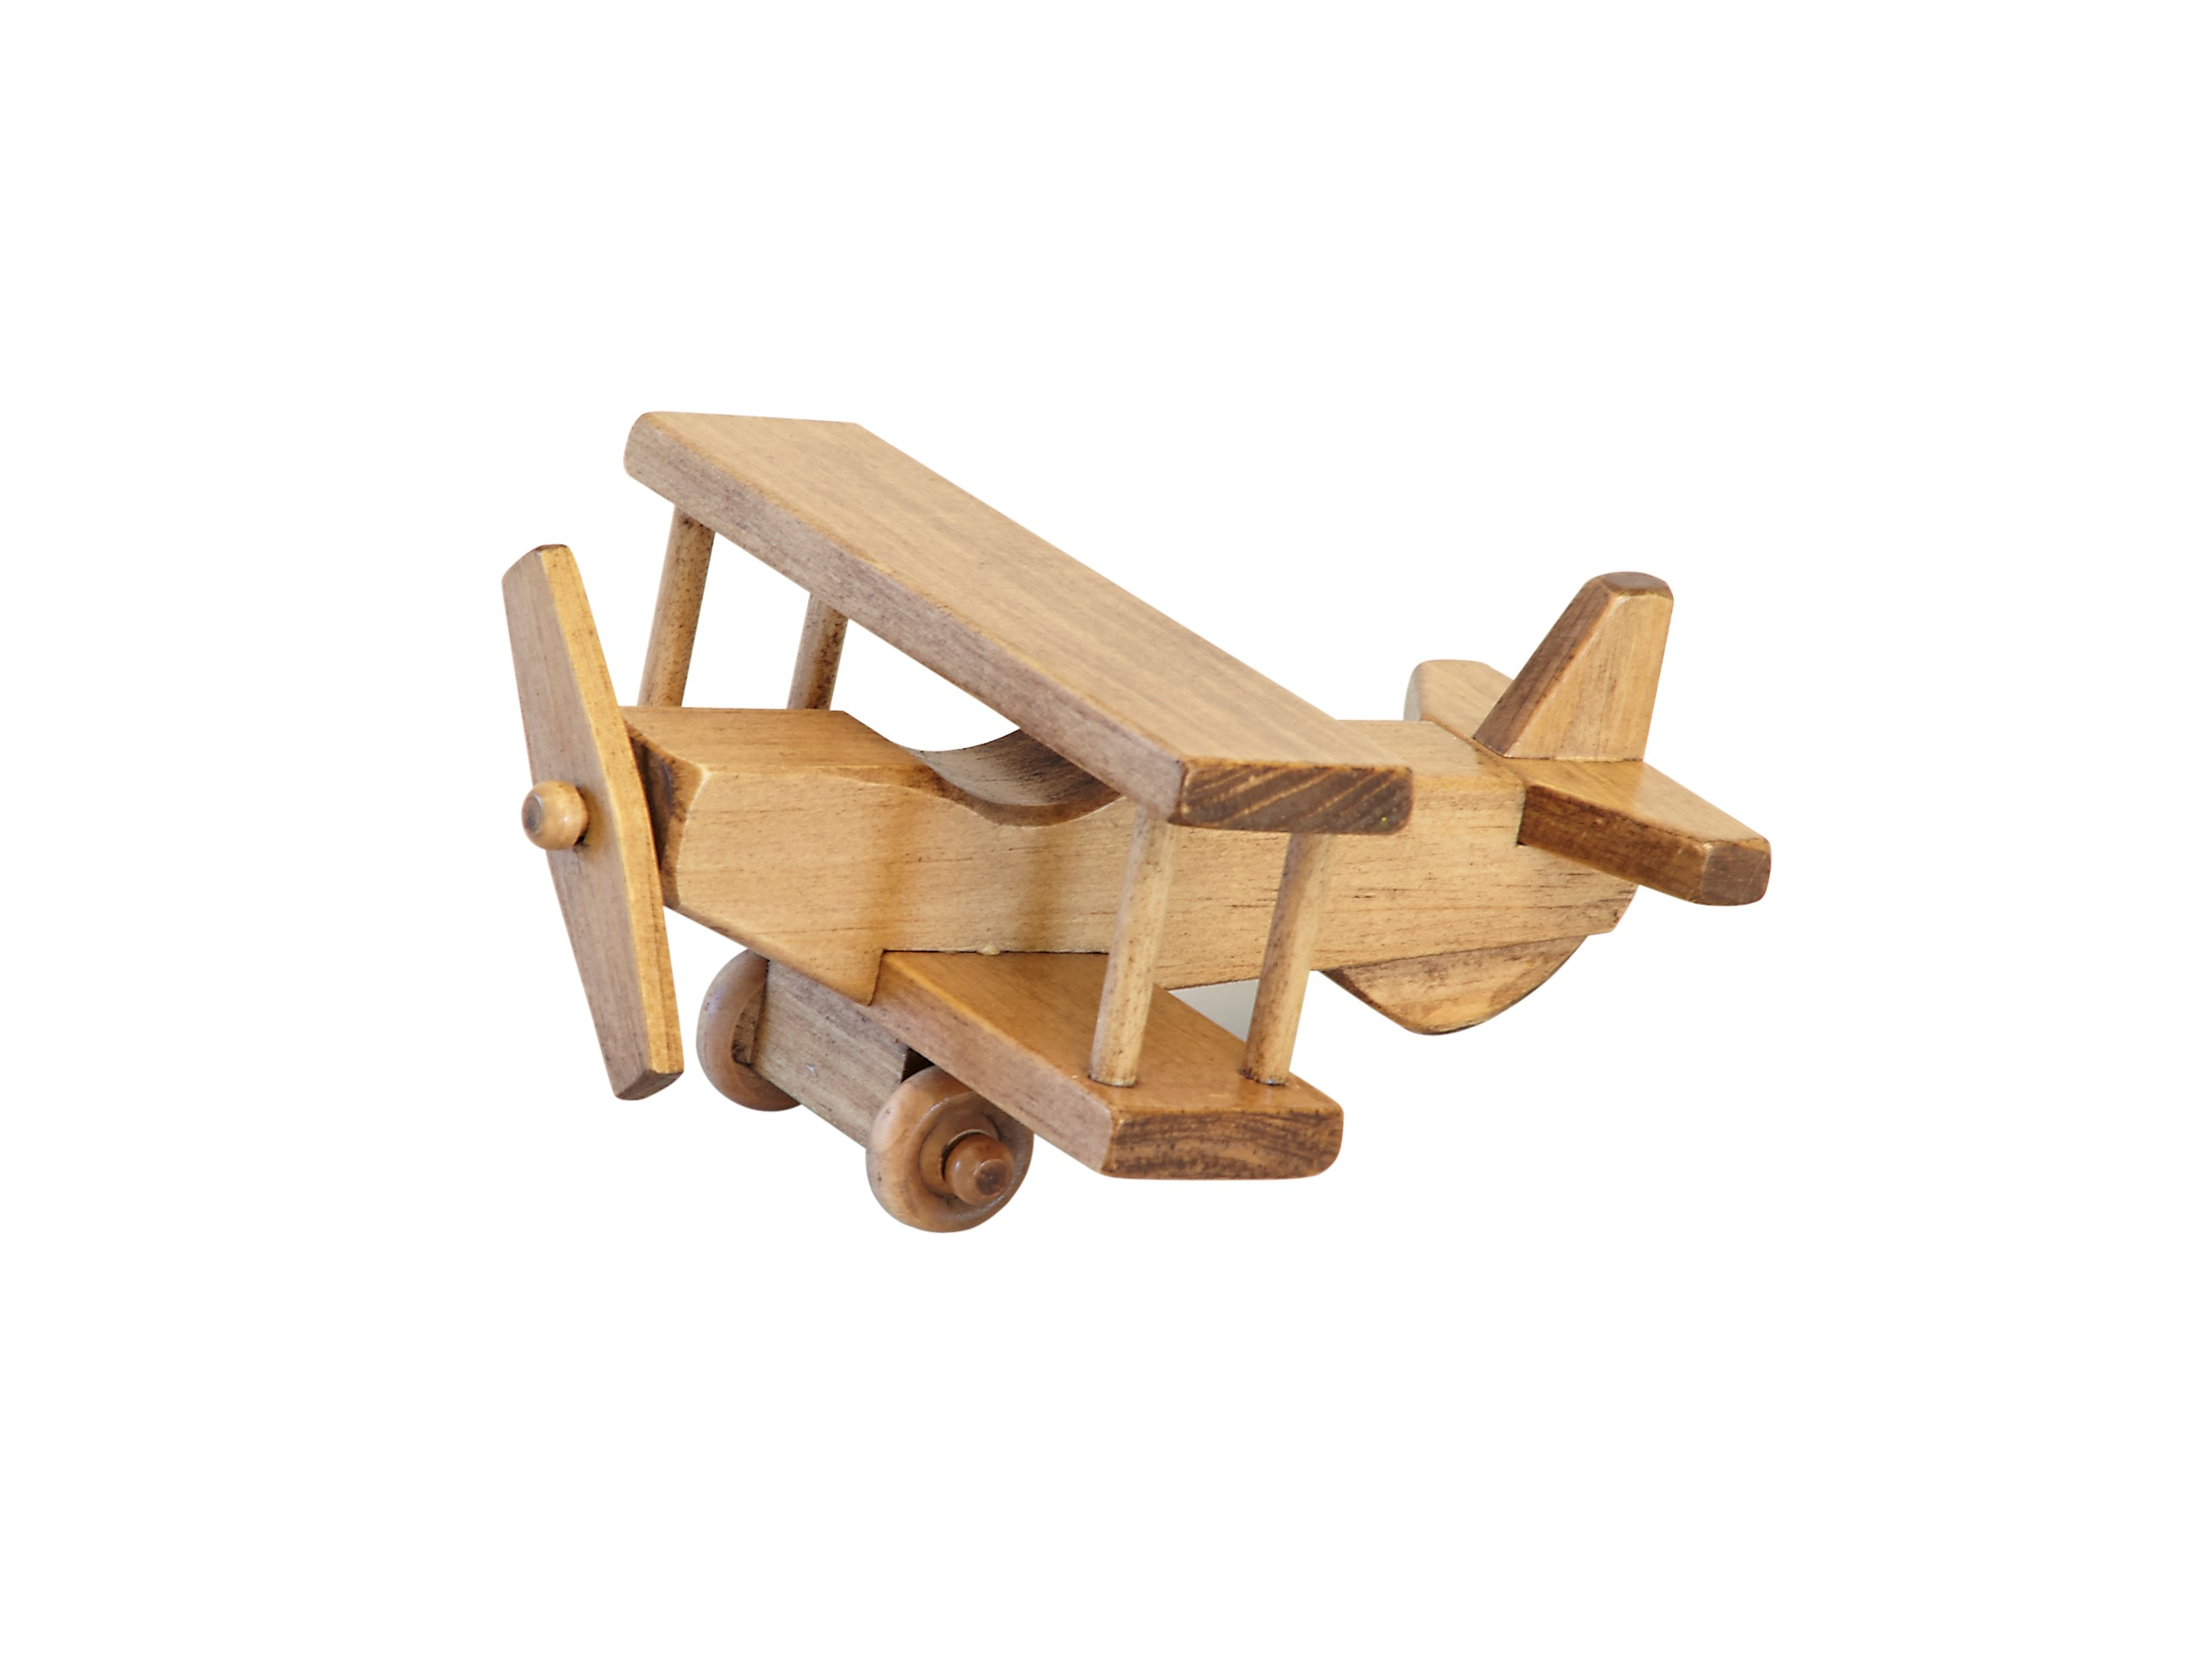 amishtoybox wooden toy airplane, kid-safe finish